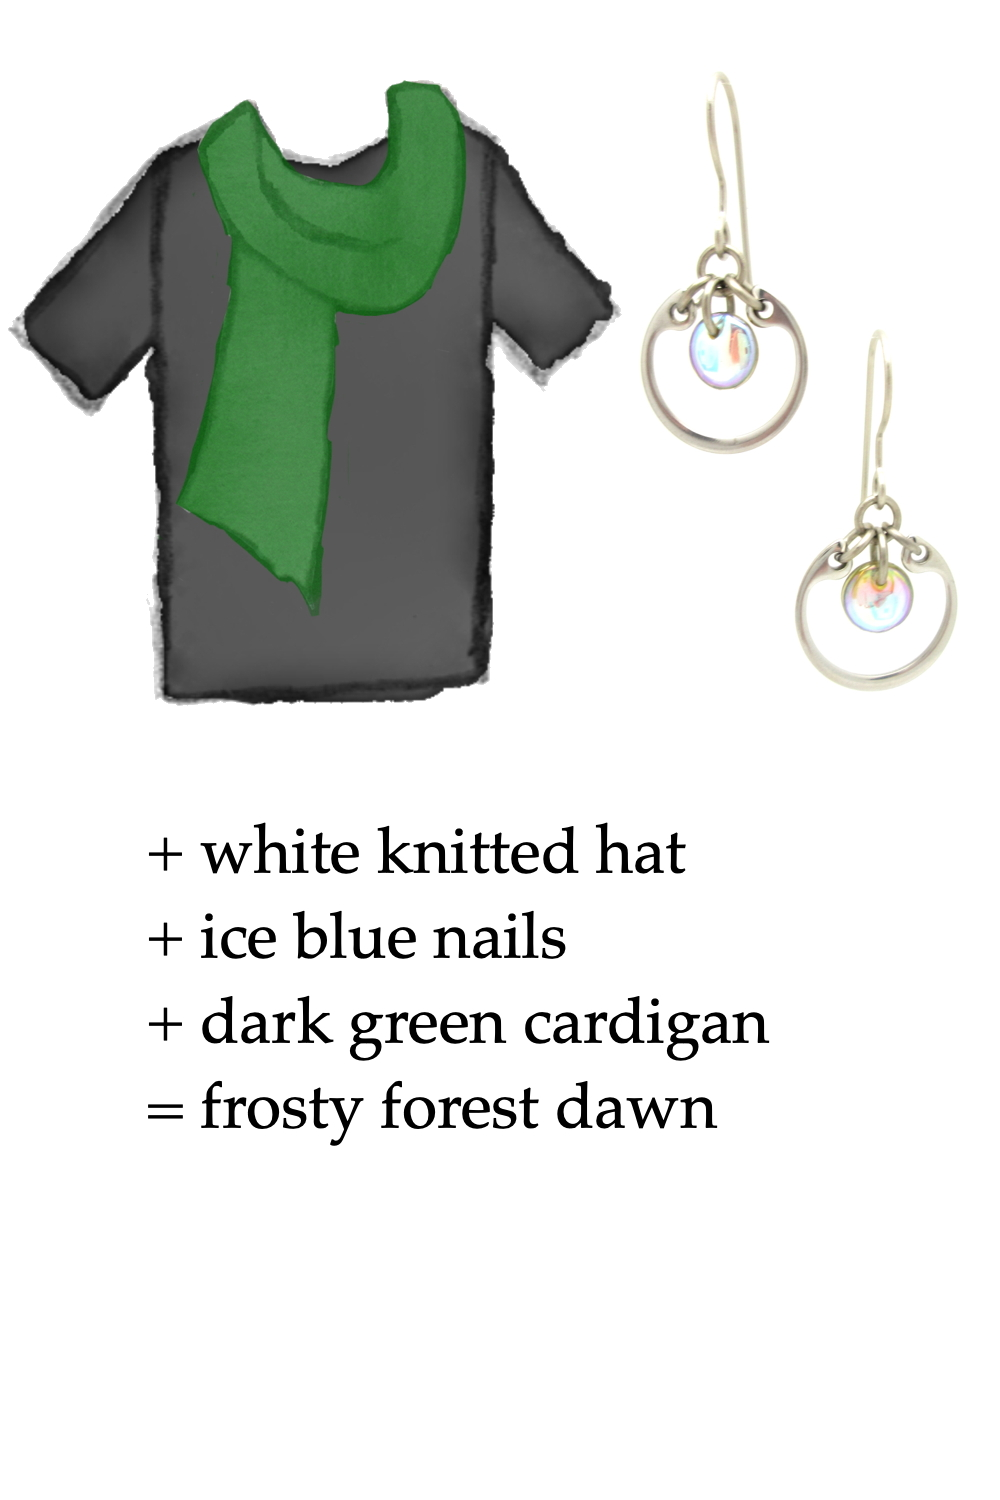 outfit inspo style sketch of a black tee shirt and green scarf with Wraptillion's small modern circle silver-toned earrings in pale rainbow; text on image reads: + white knitted hat + ice blue nails + dark green cardigan = frosty forest dawn